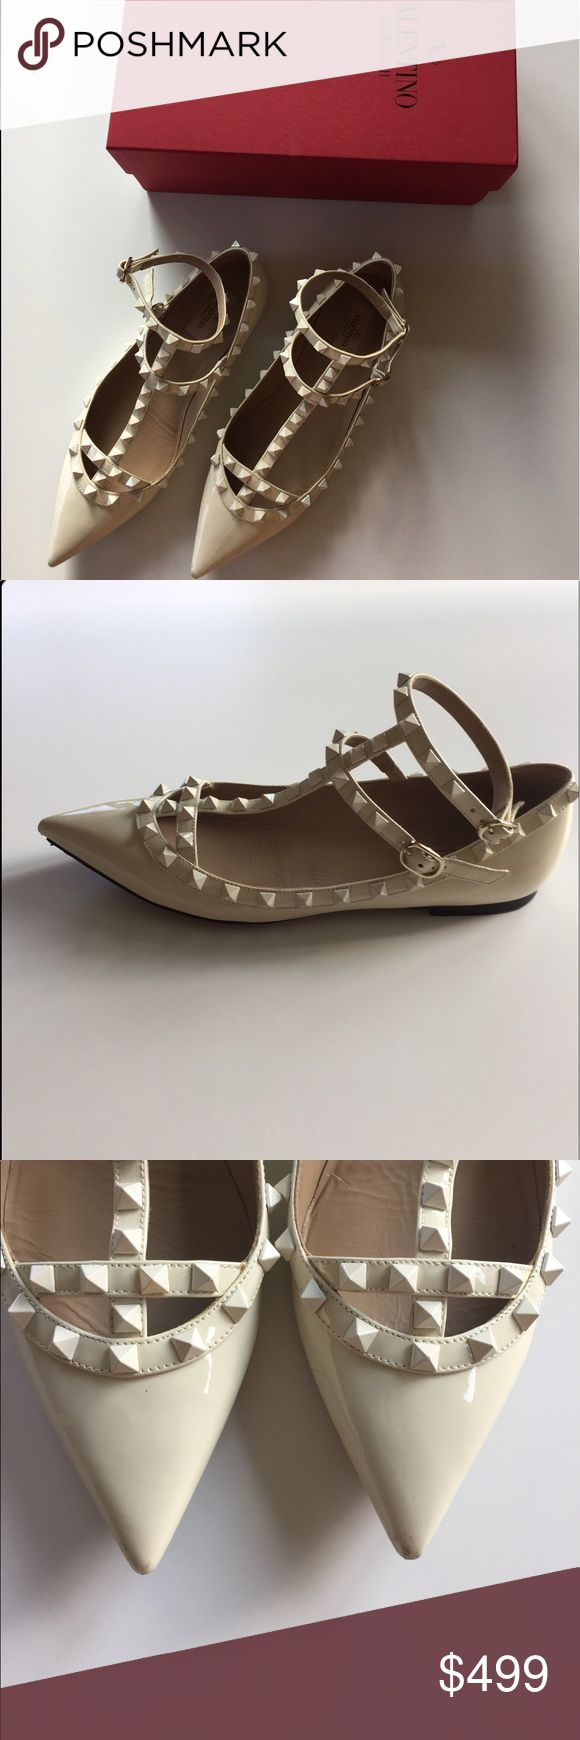 Red Valentino Rockstud Patent Cage Flats (Ivory) Leather upper with metal studs. Point toe. Adjustable ankle strap. Leather lining and sole. Used in good condition. RED Valentino Shoes Flats & Loafers